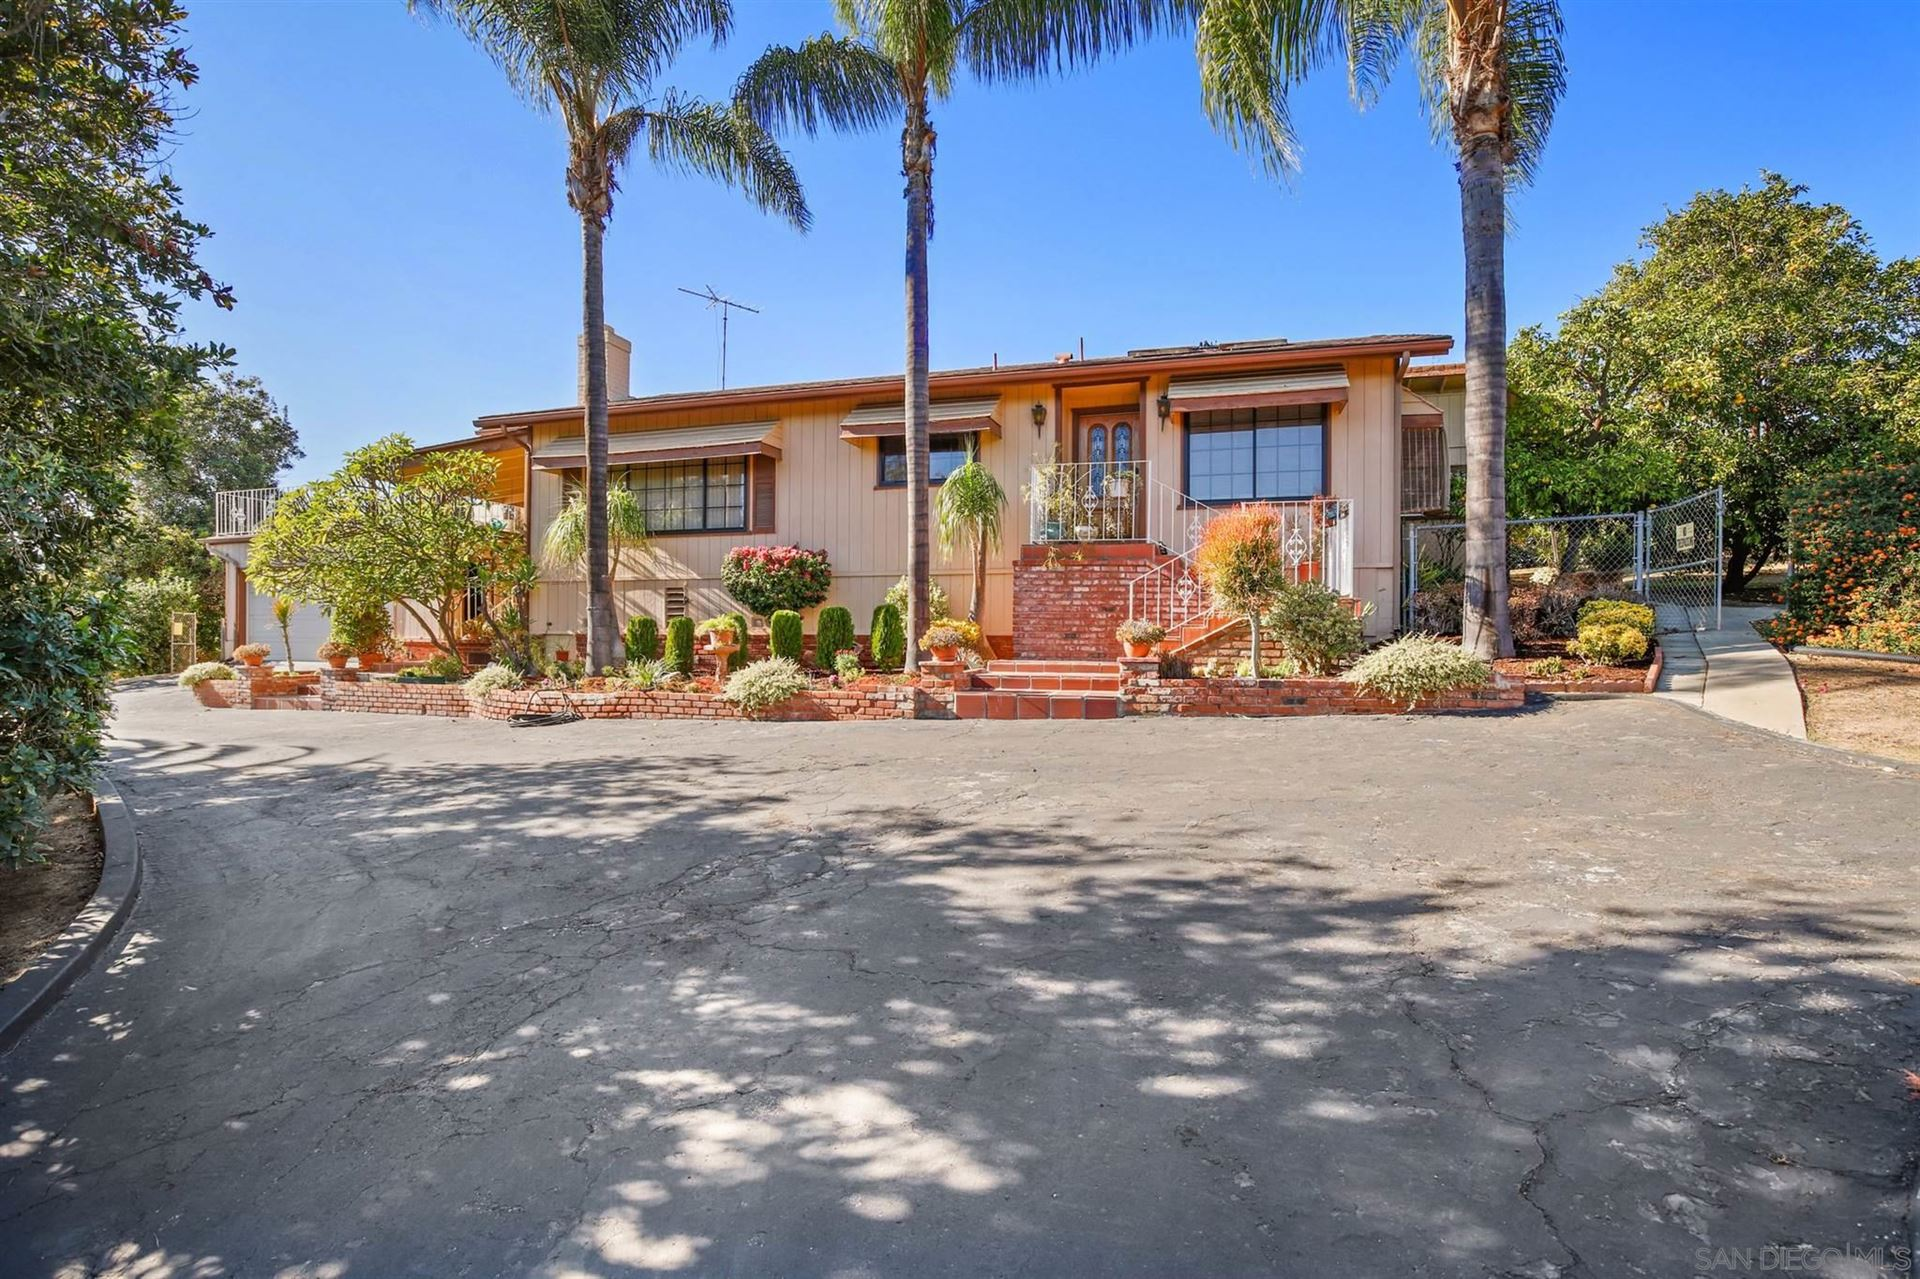 Photo of 2210 E Alvarado St, Fallbrook, CA 92028 (MLS # 200052084)